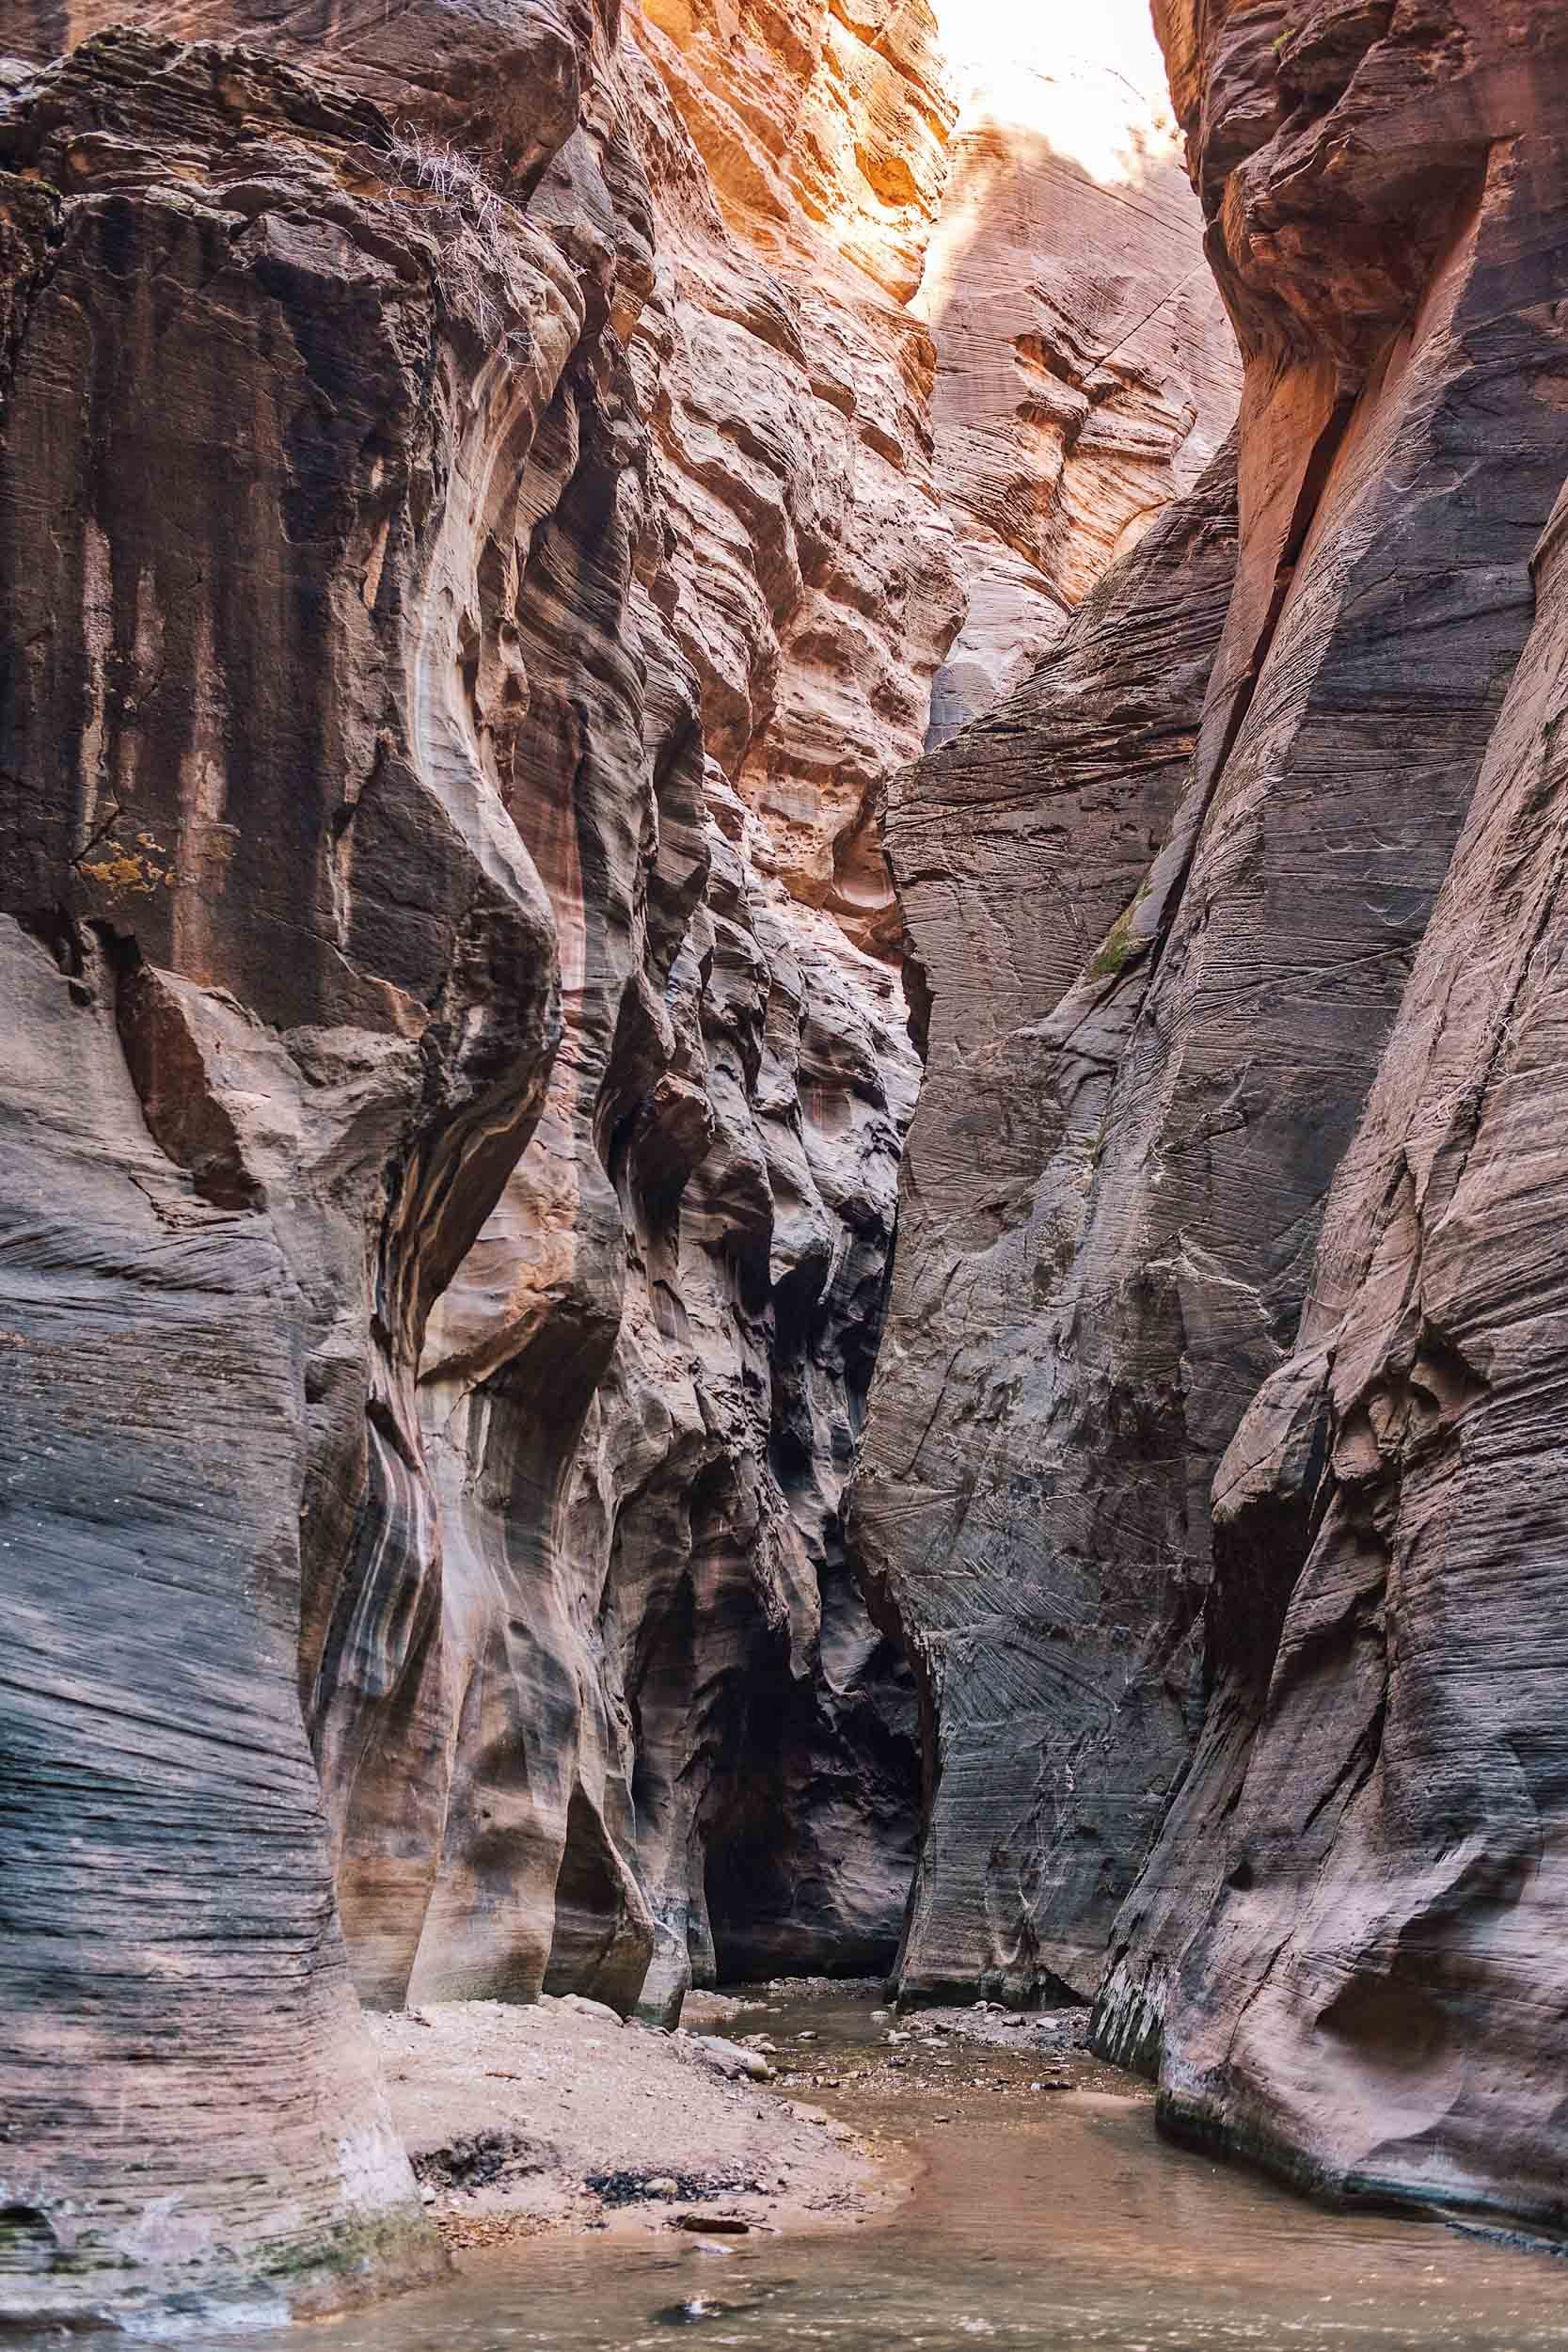 The Narrows at Zion National Park completely crowd-free during winter